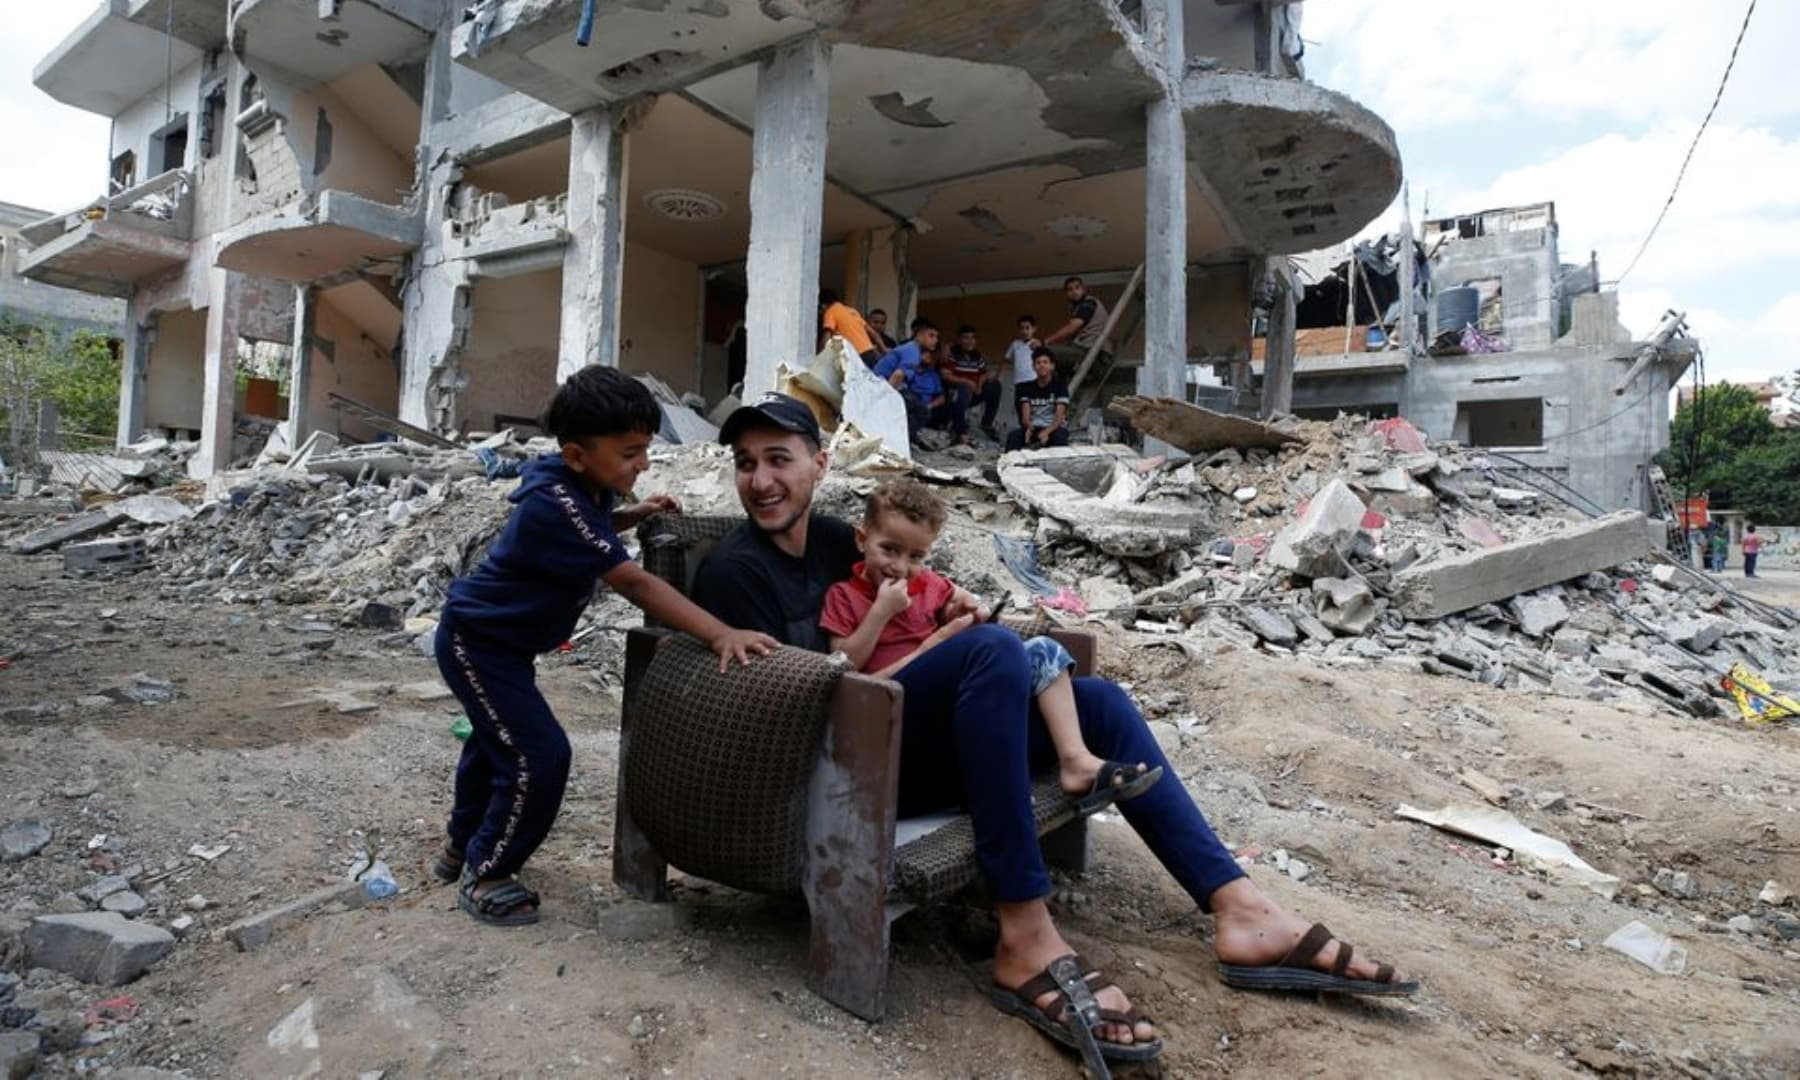 Palestinians sit on a chair amid the rubble of a building which was damaged in Israeli air strikes during the Israeli attacks on Gaza, May 23, 2021. — Reuters